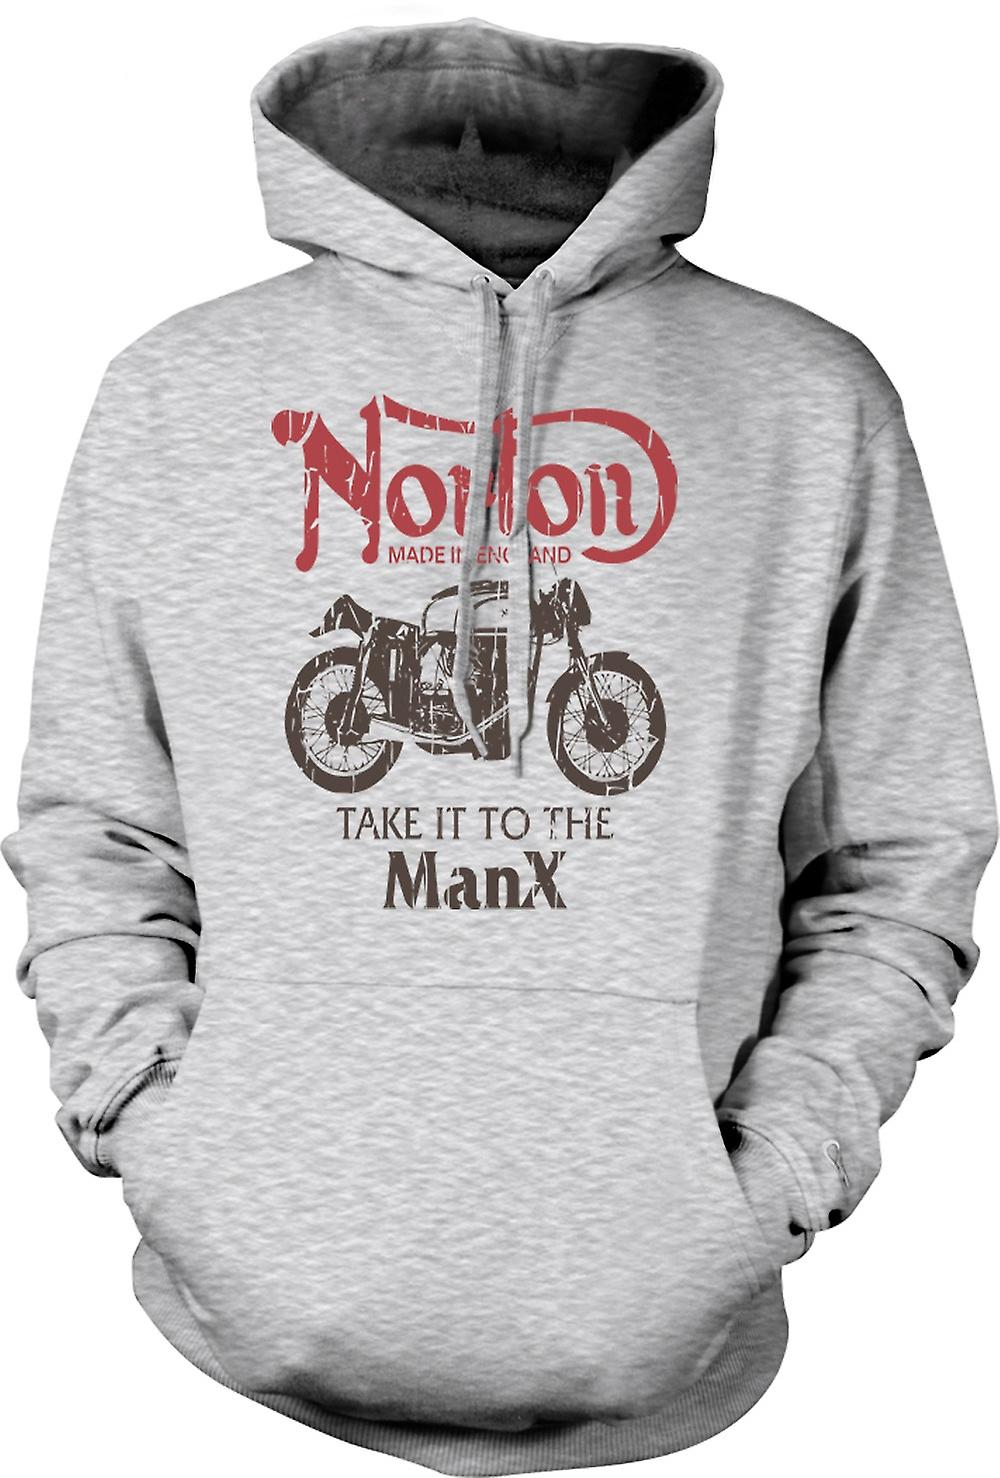 Mens Hoodie - Take It To The Manx